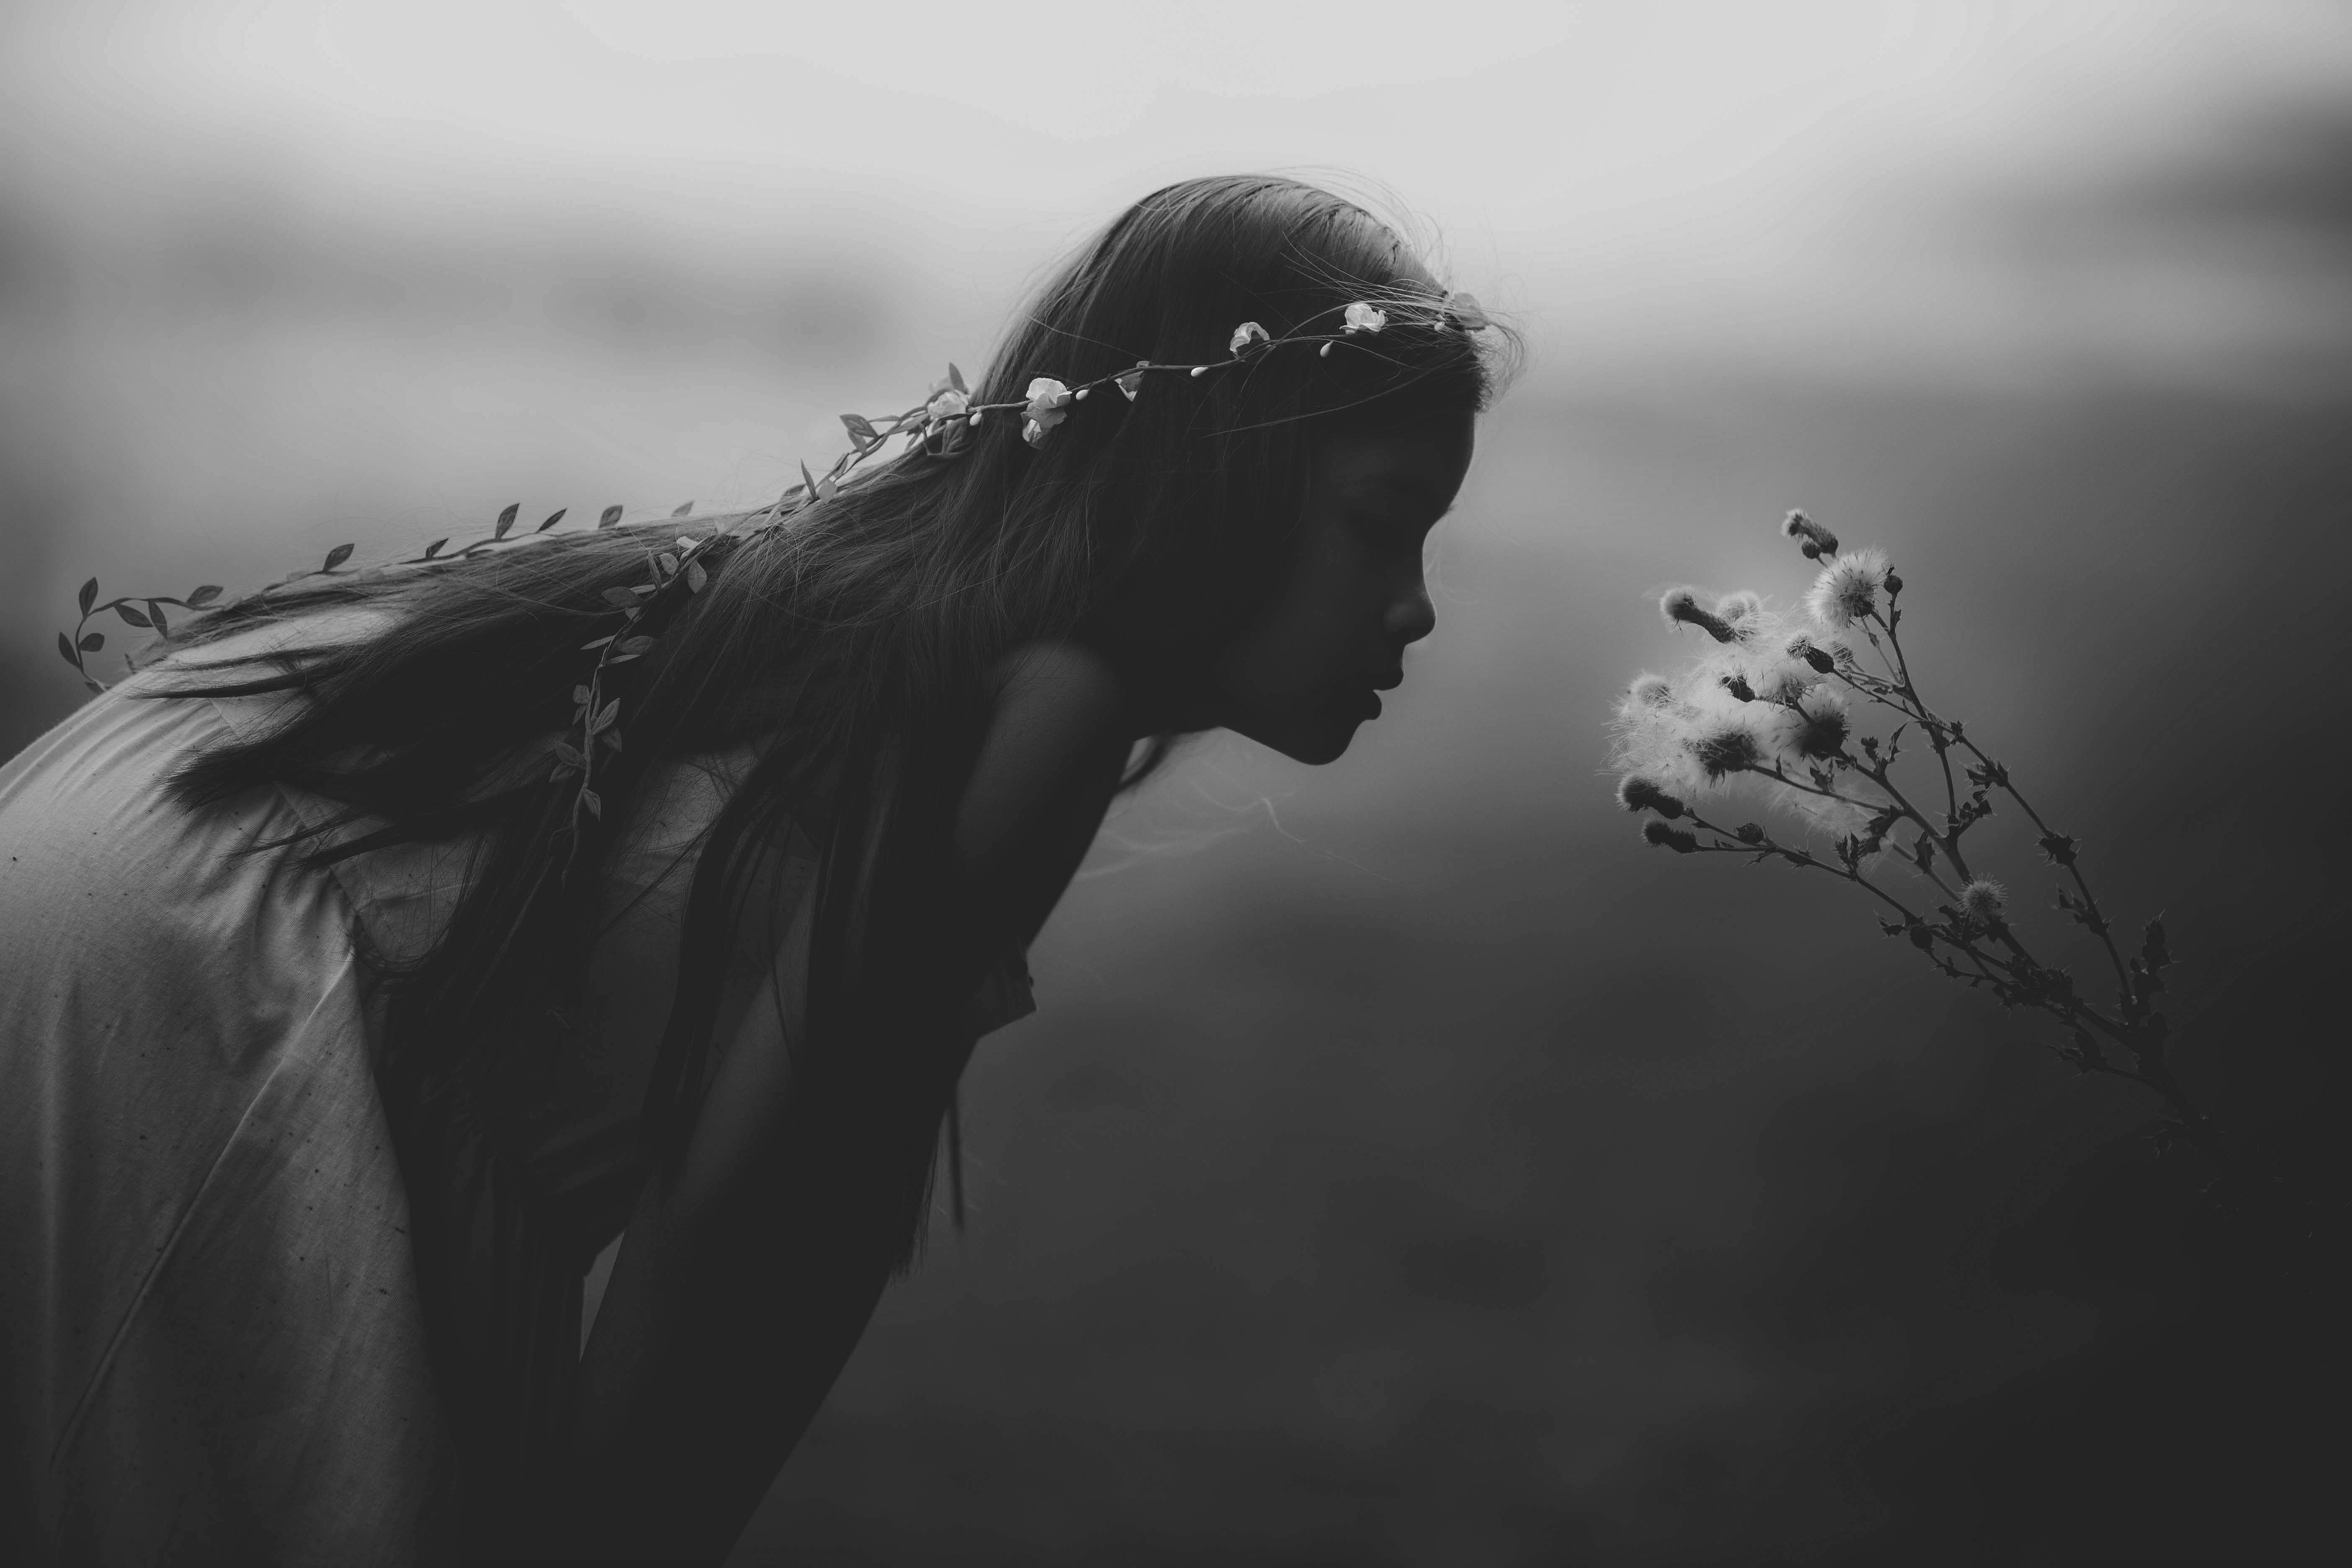 Black and white shot of young child with flower tiara blowing dandelion seedlings